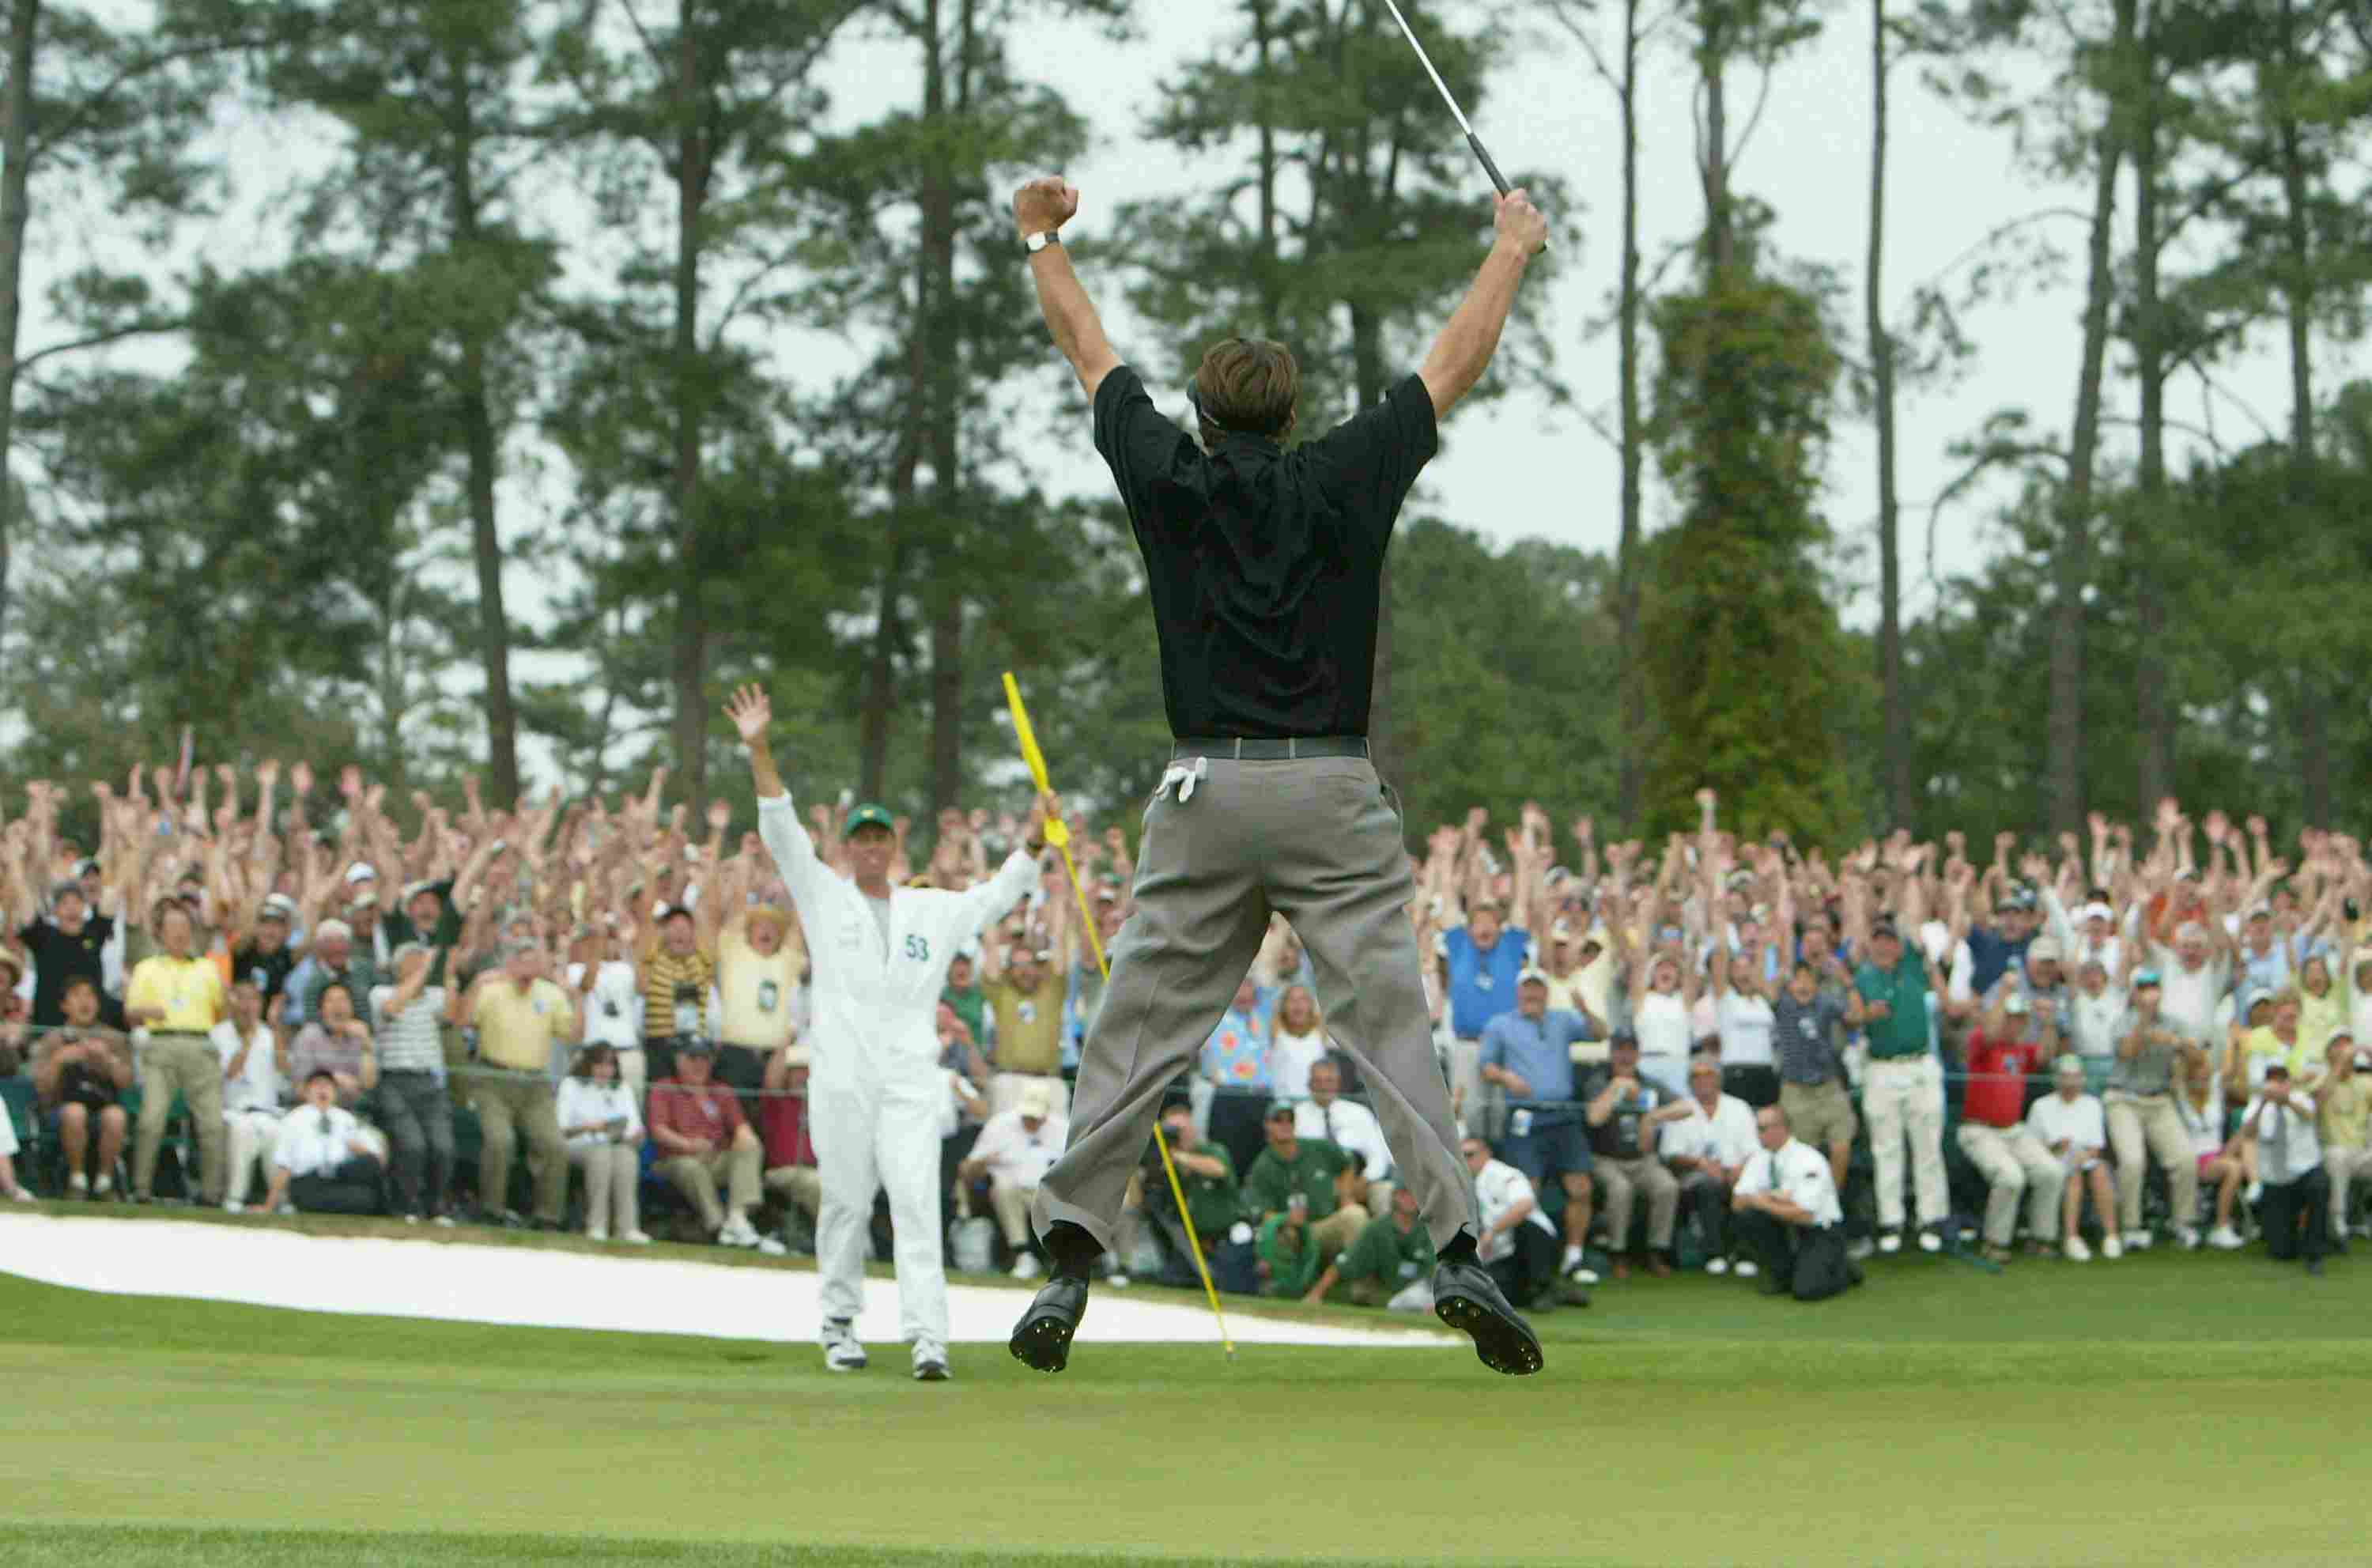 Phil Mickelson jumps in the air after sinking his birdie putt to win the 2004 Masters